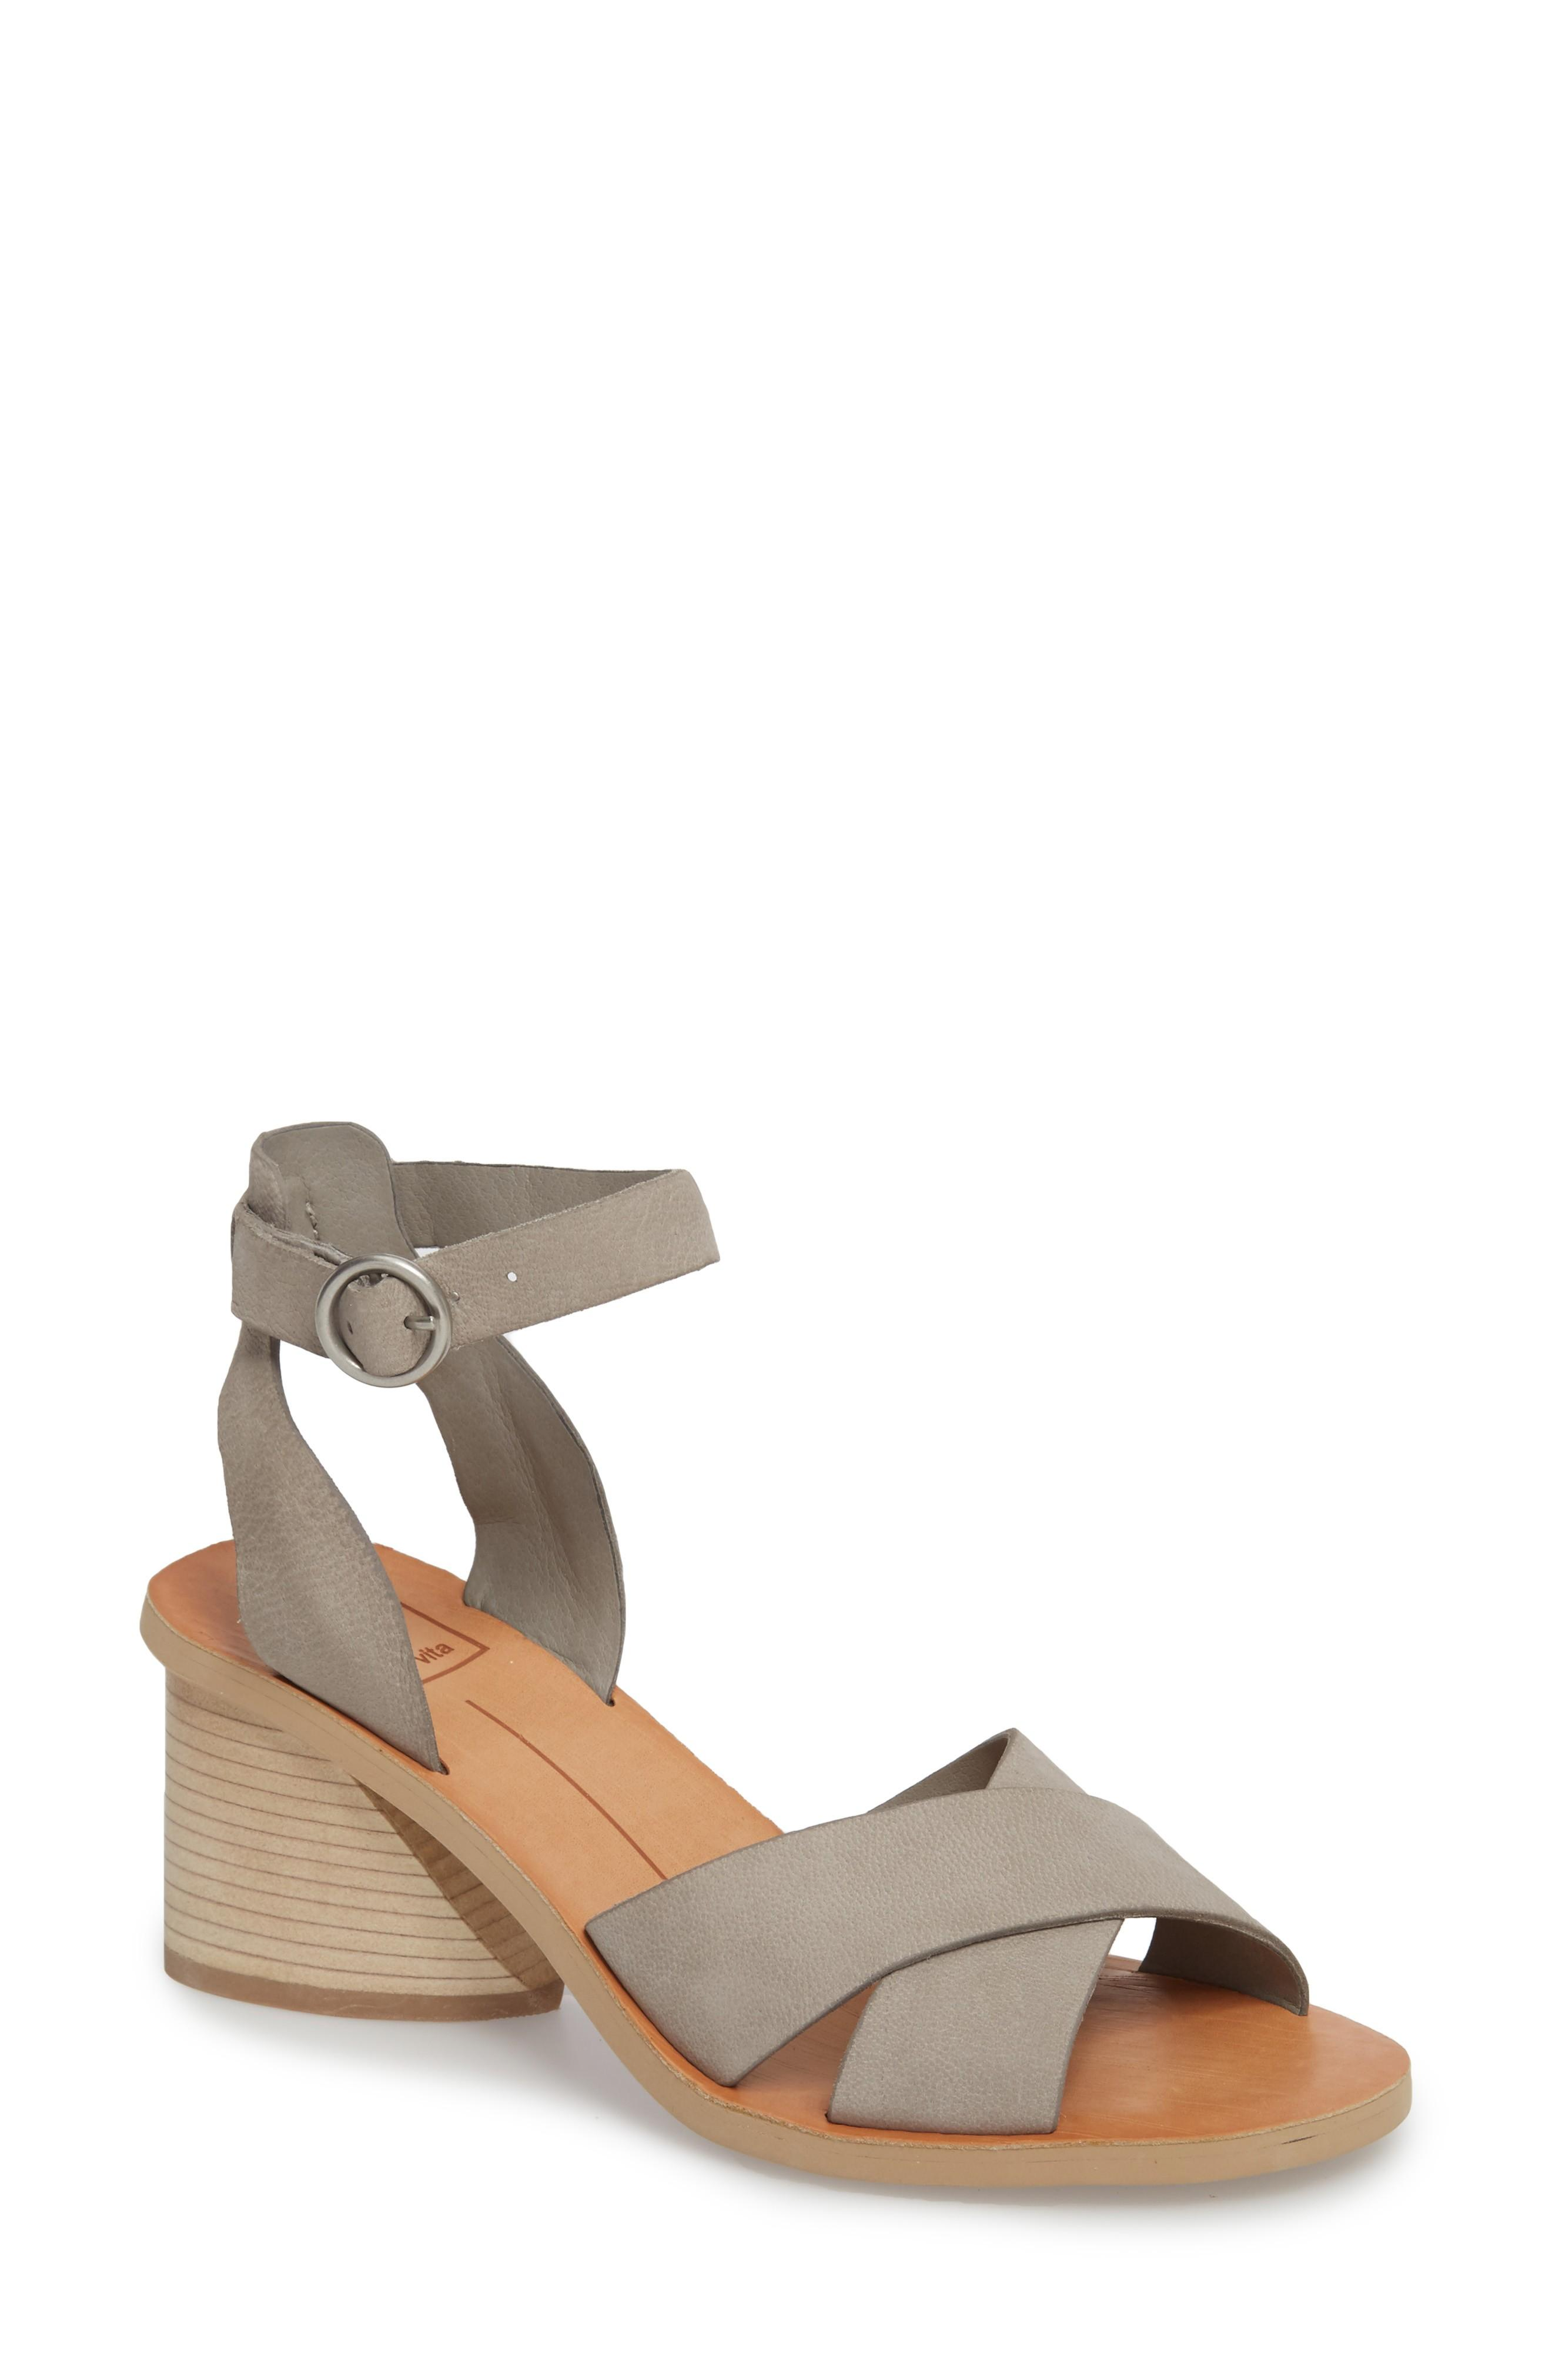 Dolce Vita Women's Roman Nubuck Leather Mid-heel Sandals In Grey Nubuck